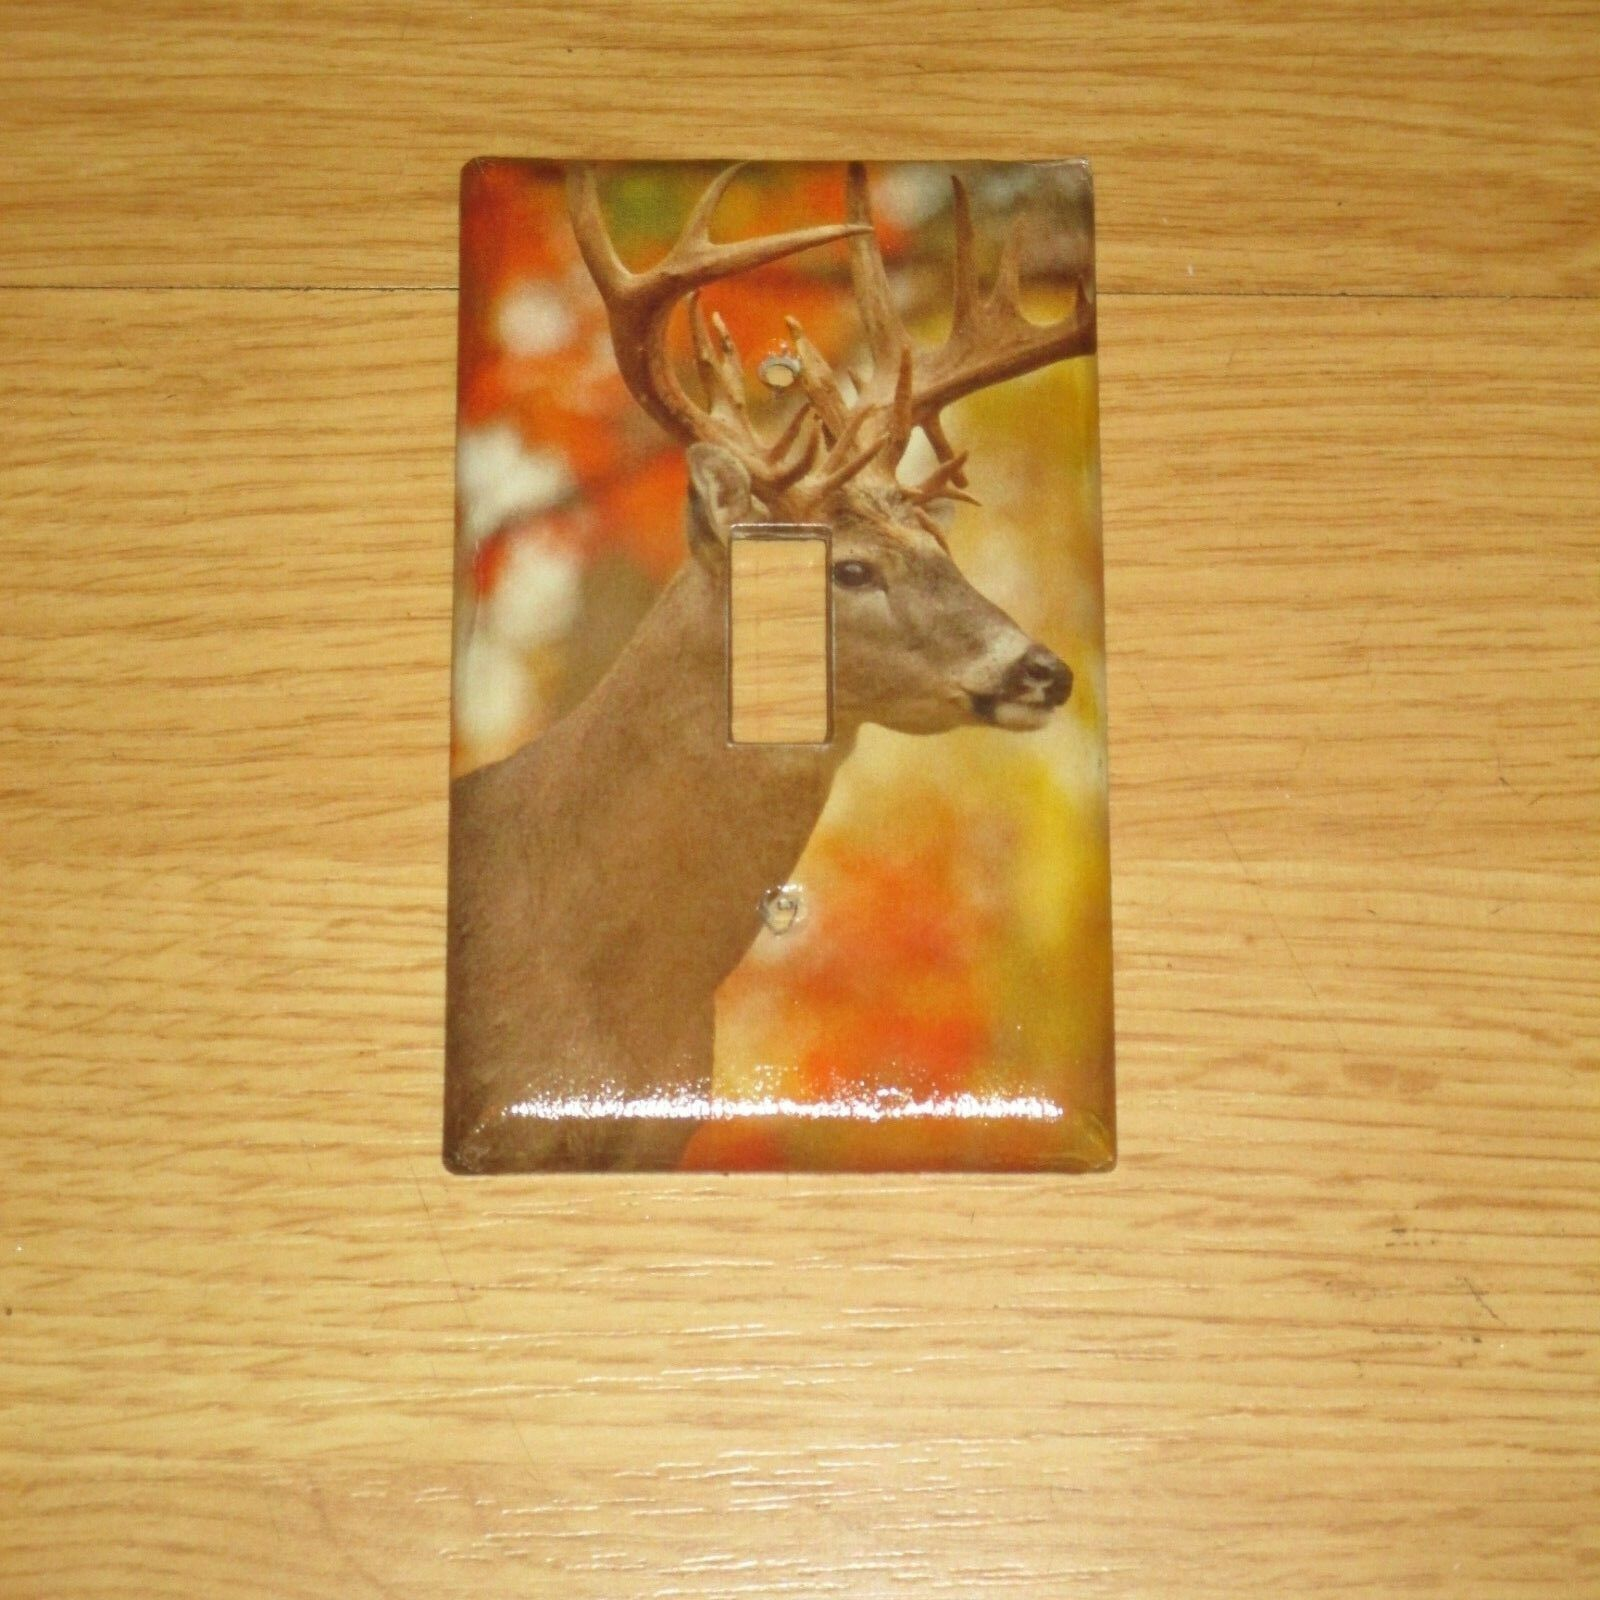 MONSTER RACK TROPHY Buck Whitetail Deer Wild Game Light Switch Cover ...